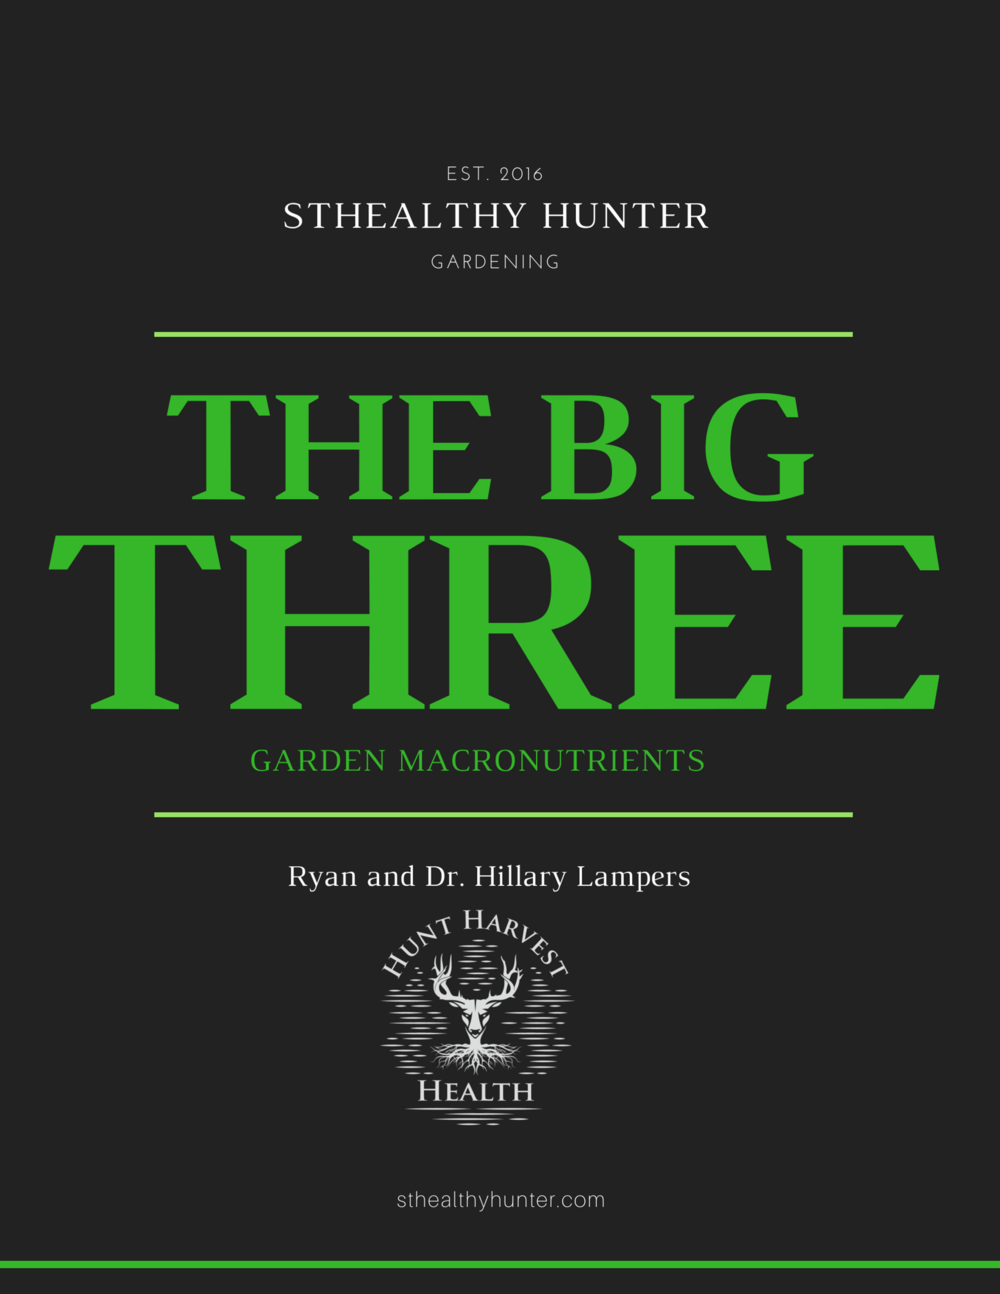 The Big Three Garden Nutrients  - Hear more on the HHH Podcast #61 on Soil